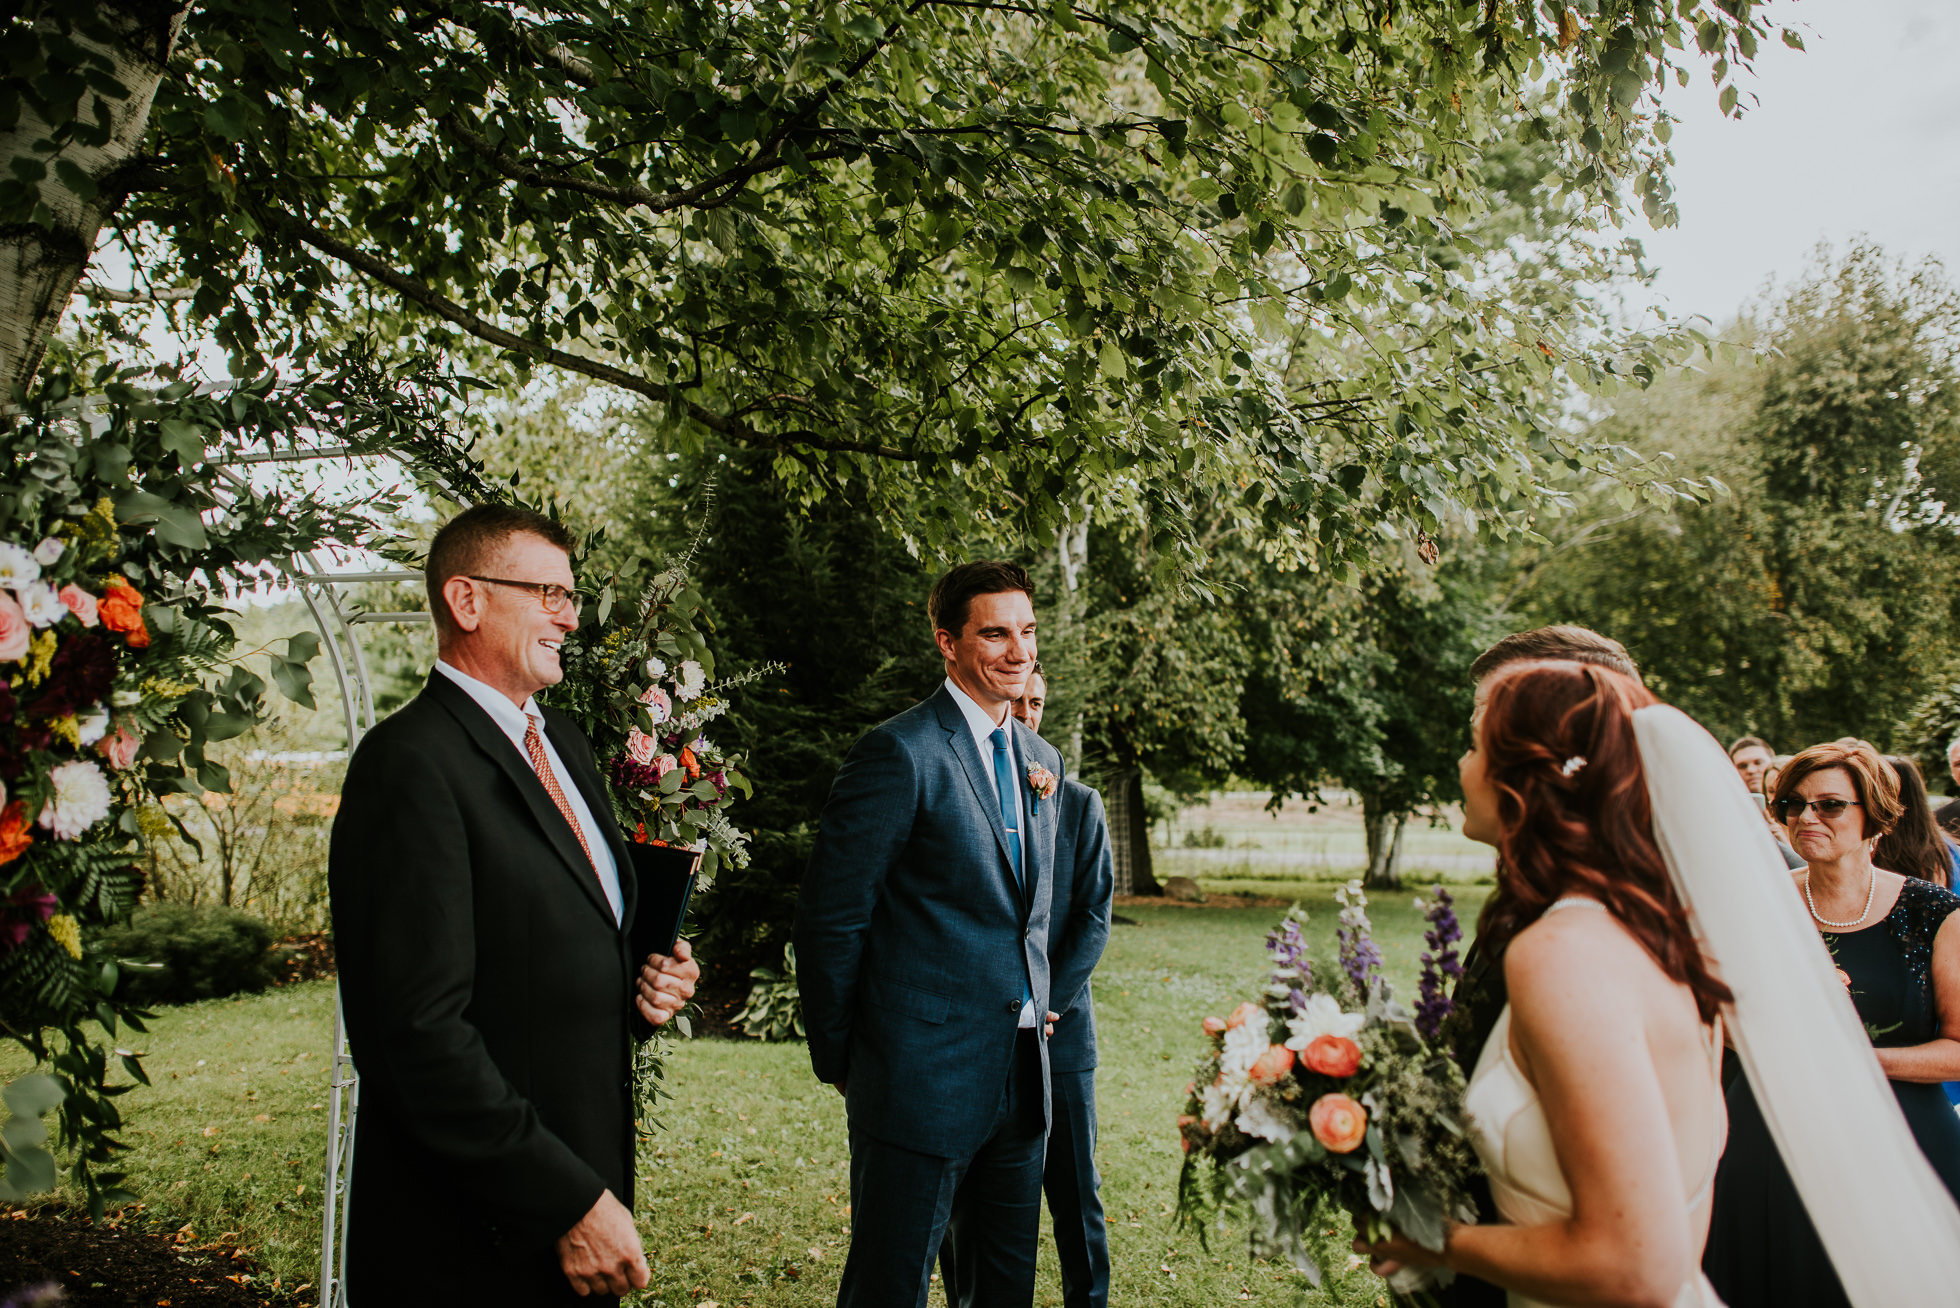 grooms sees bride for the first time at outdoor ceremony at olde tater barn wedding in central bridge, ny photographed by traverse the tides